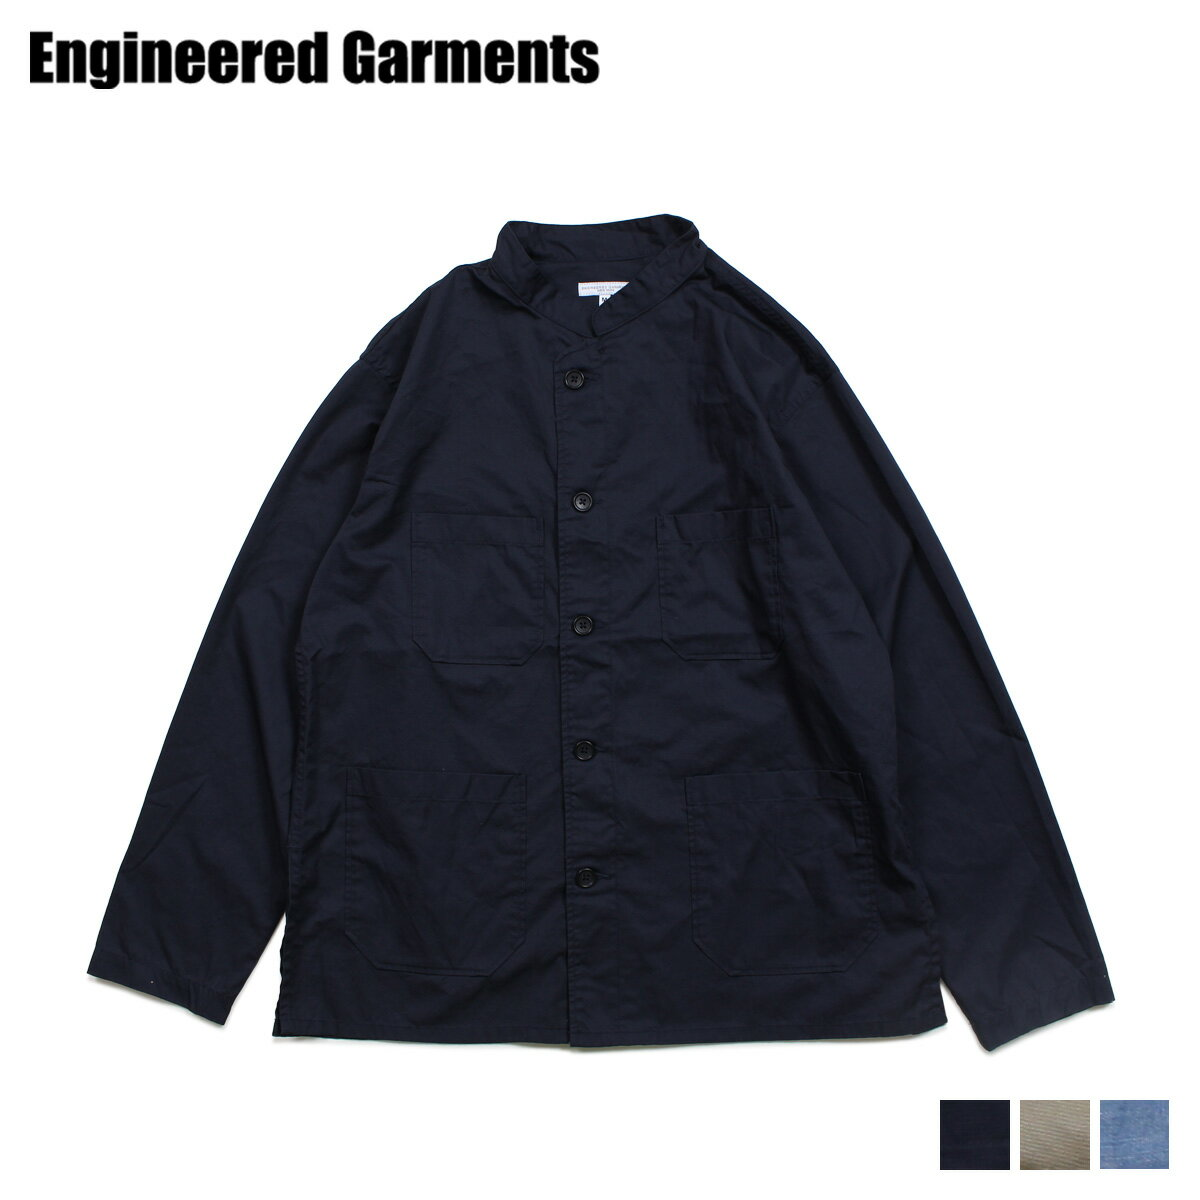 トップス, カジュアルシャツ 600OFFENGINEERED GARMENTS DAYTON SHIRT 19SA009